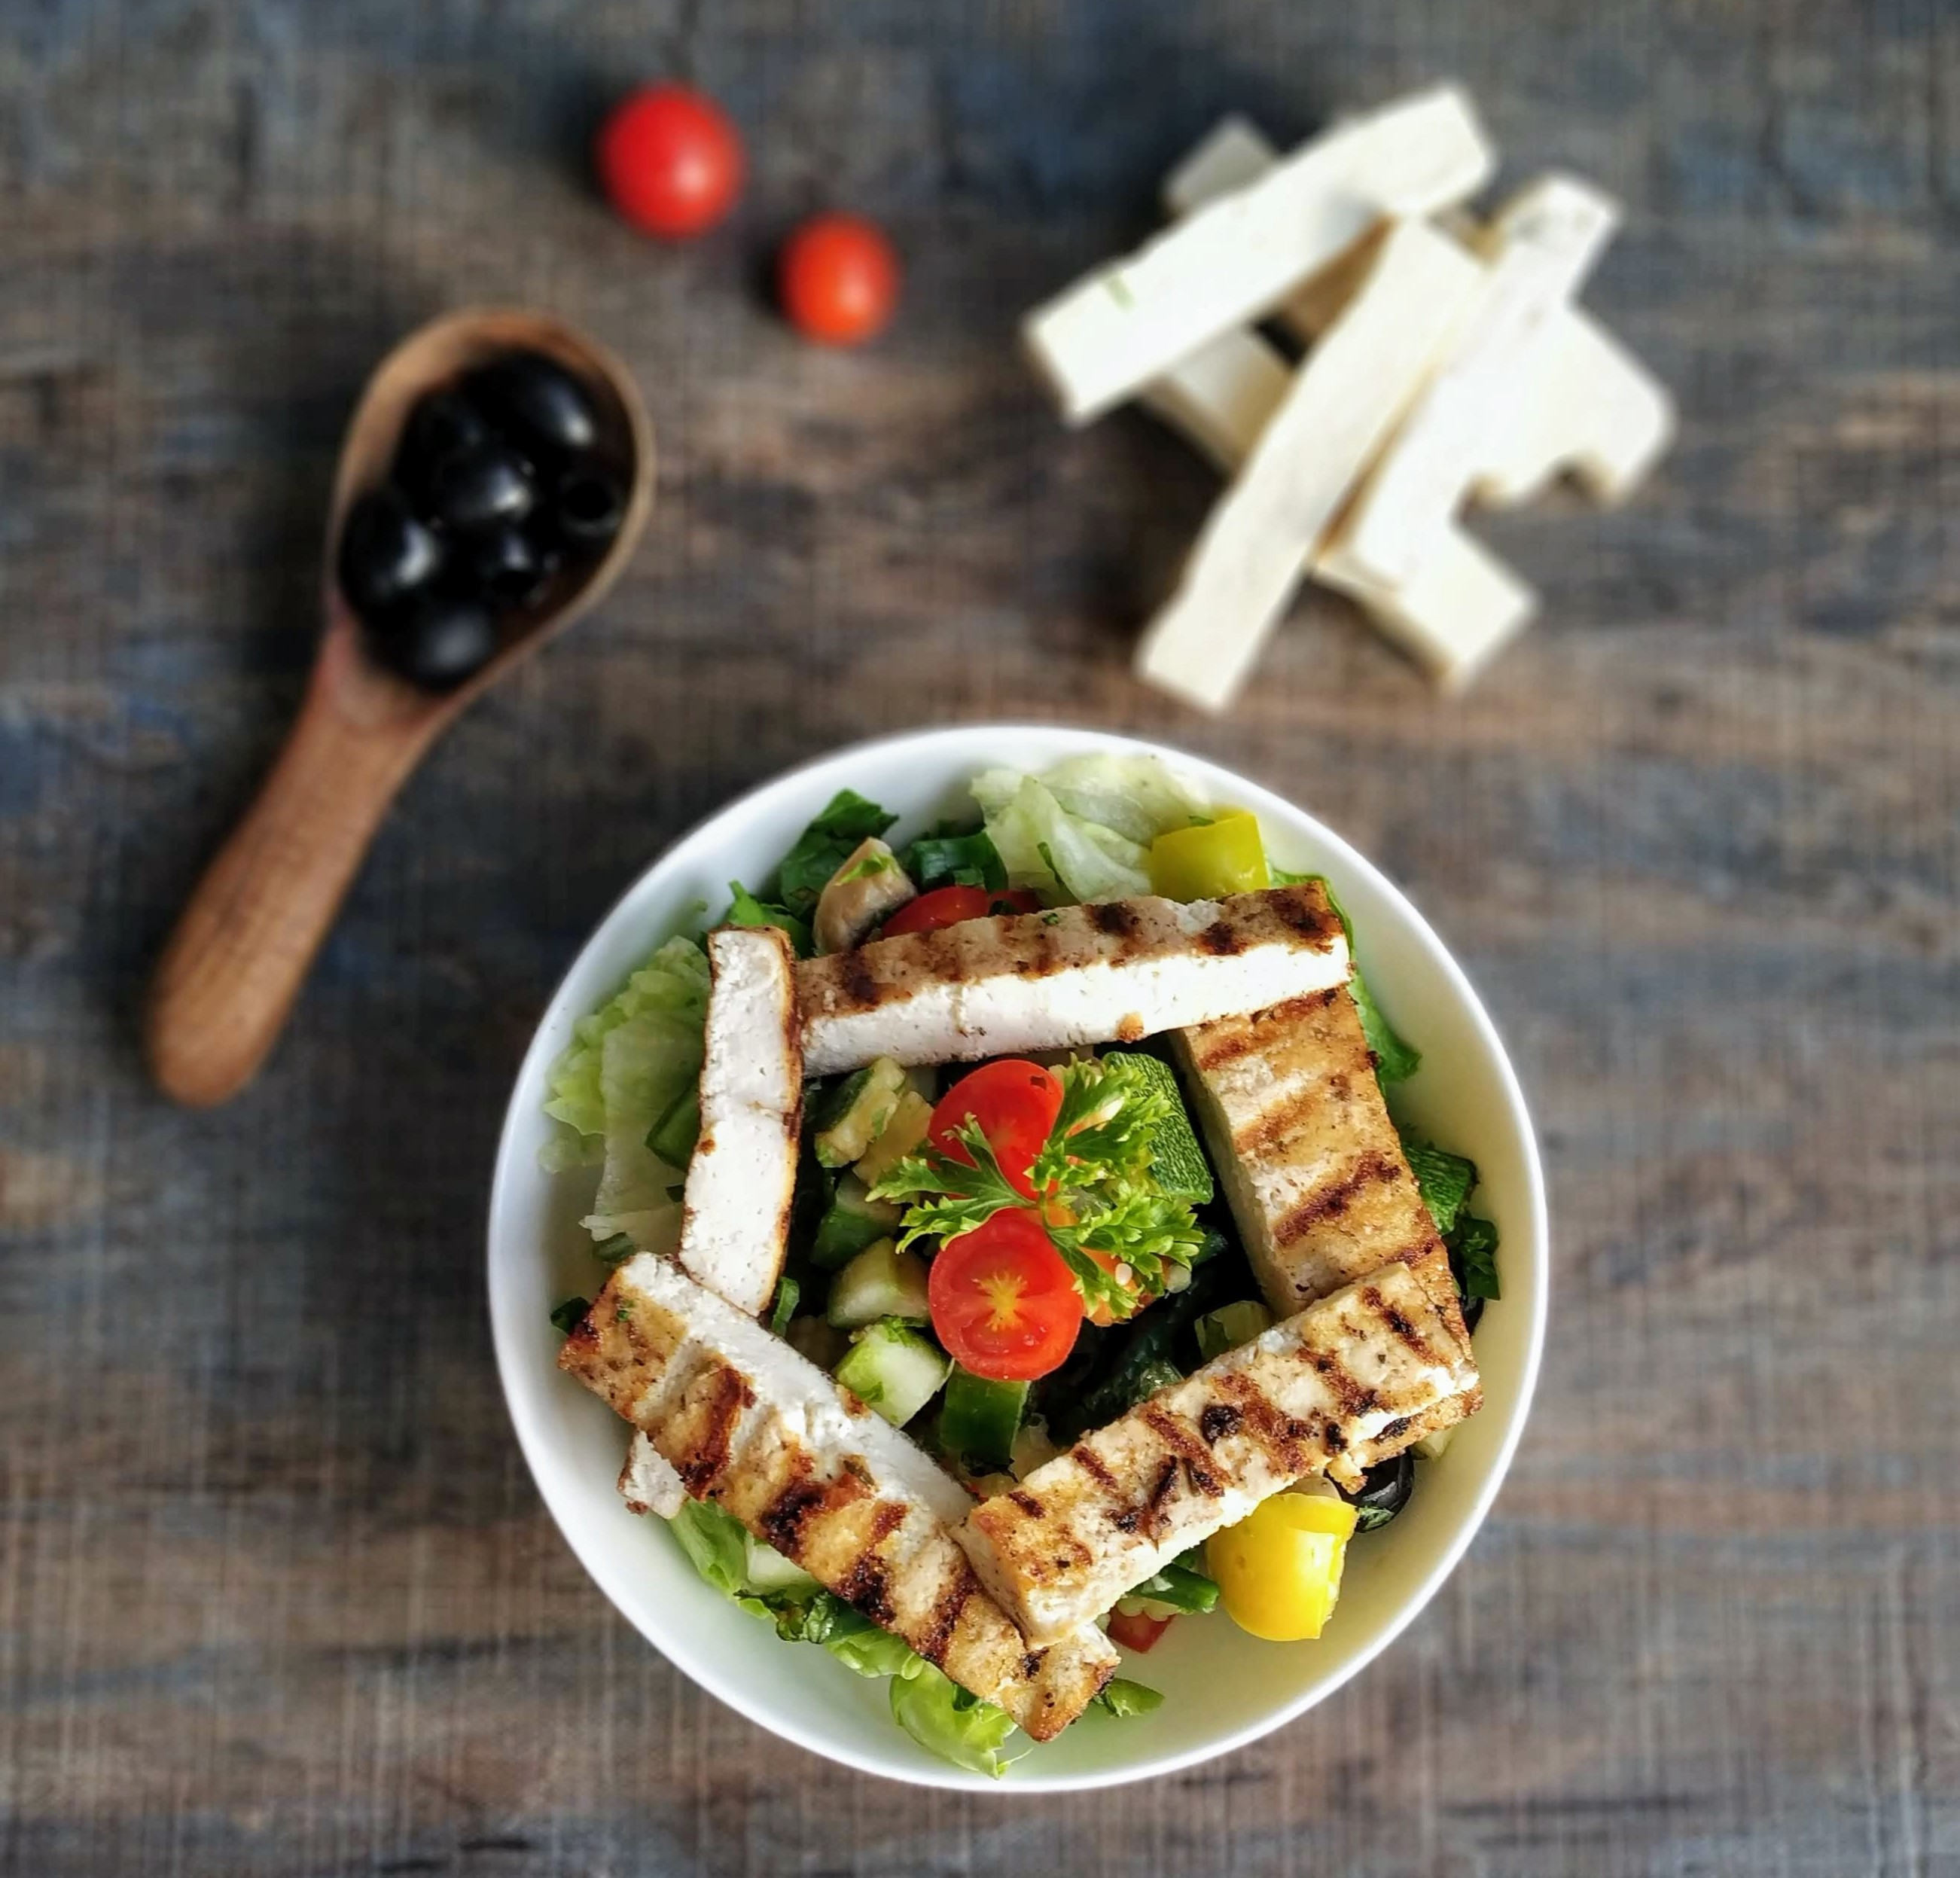 Smokey Garlic Tofu salad